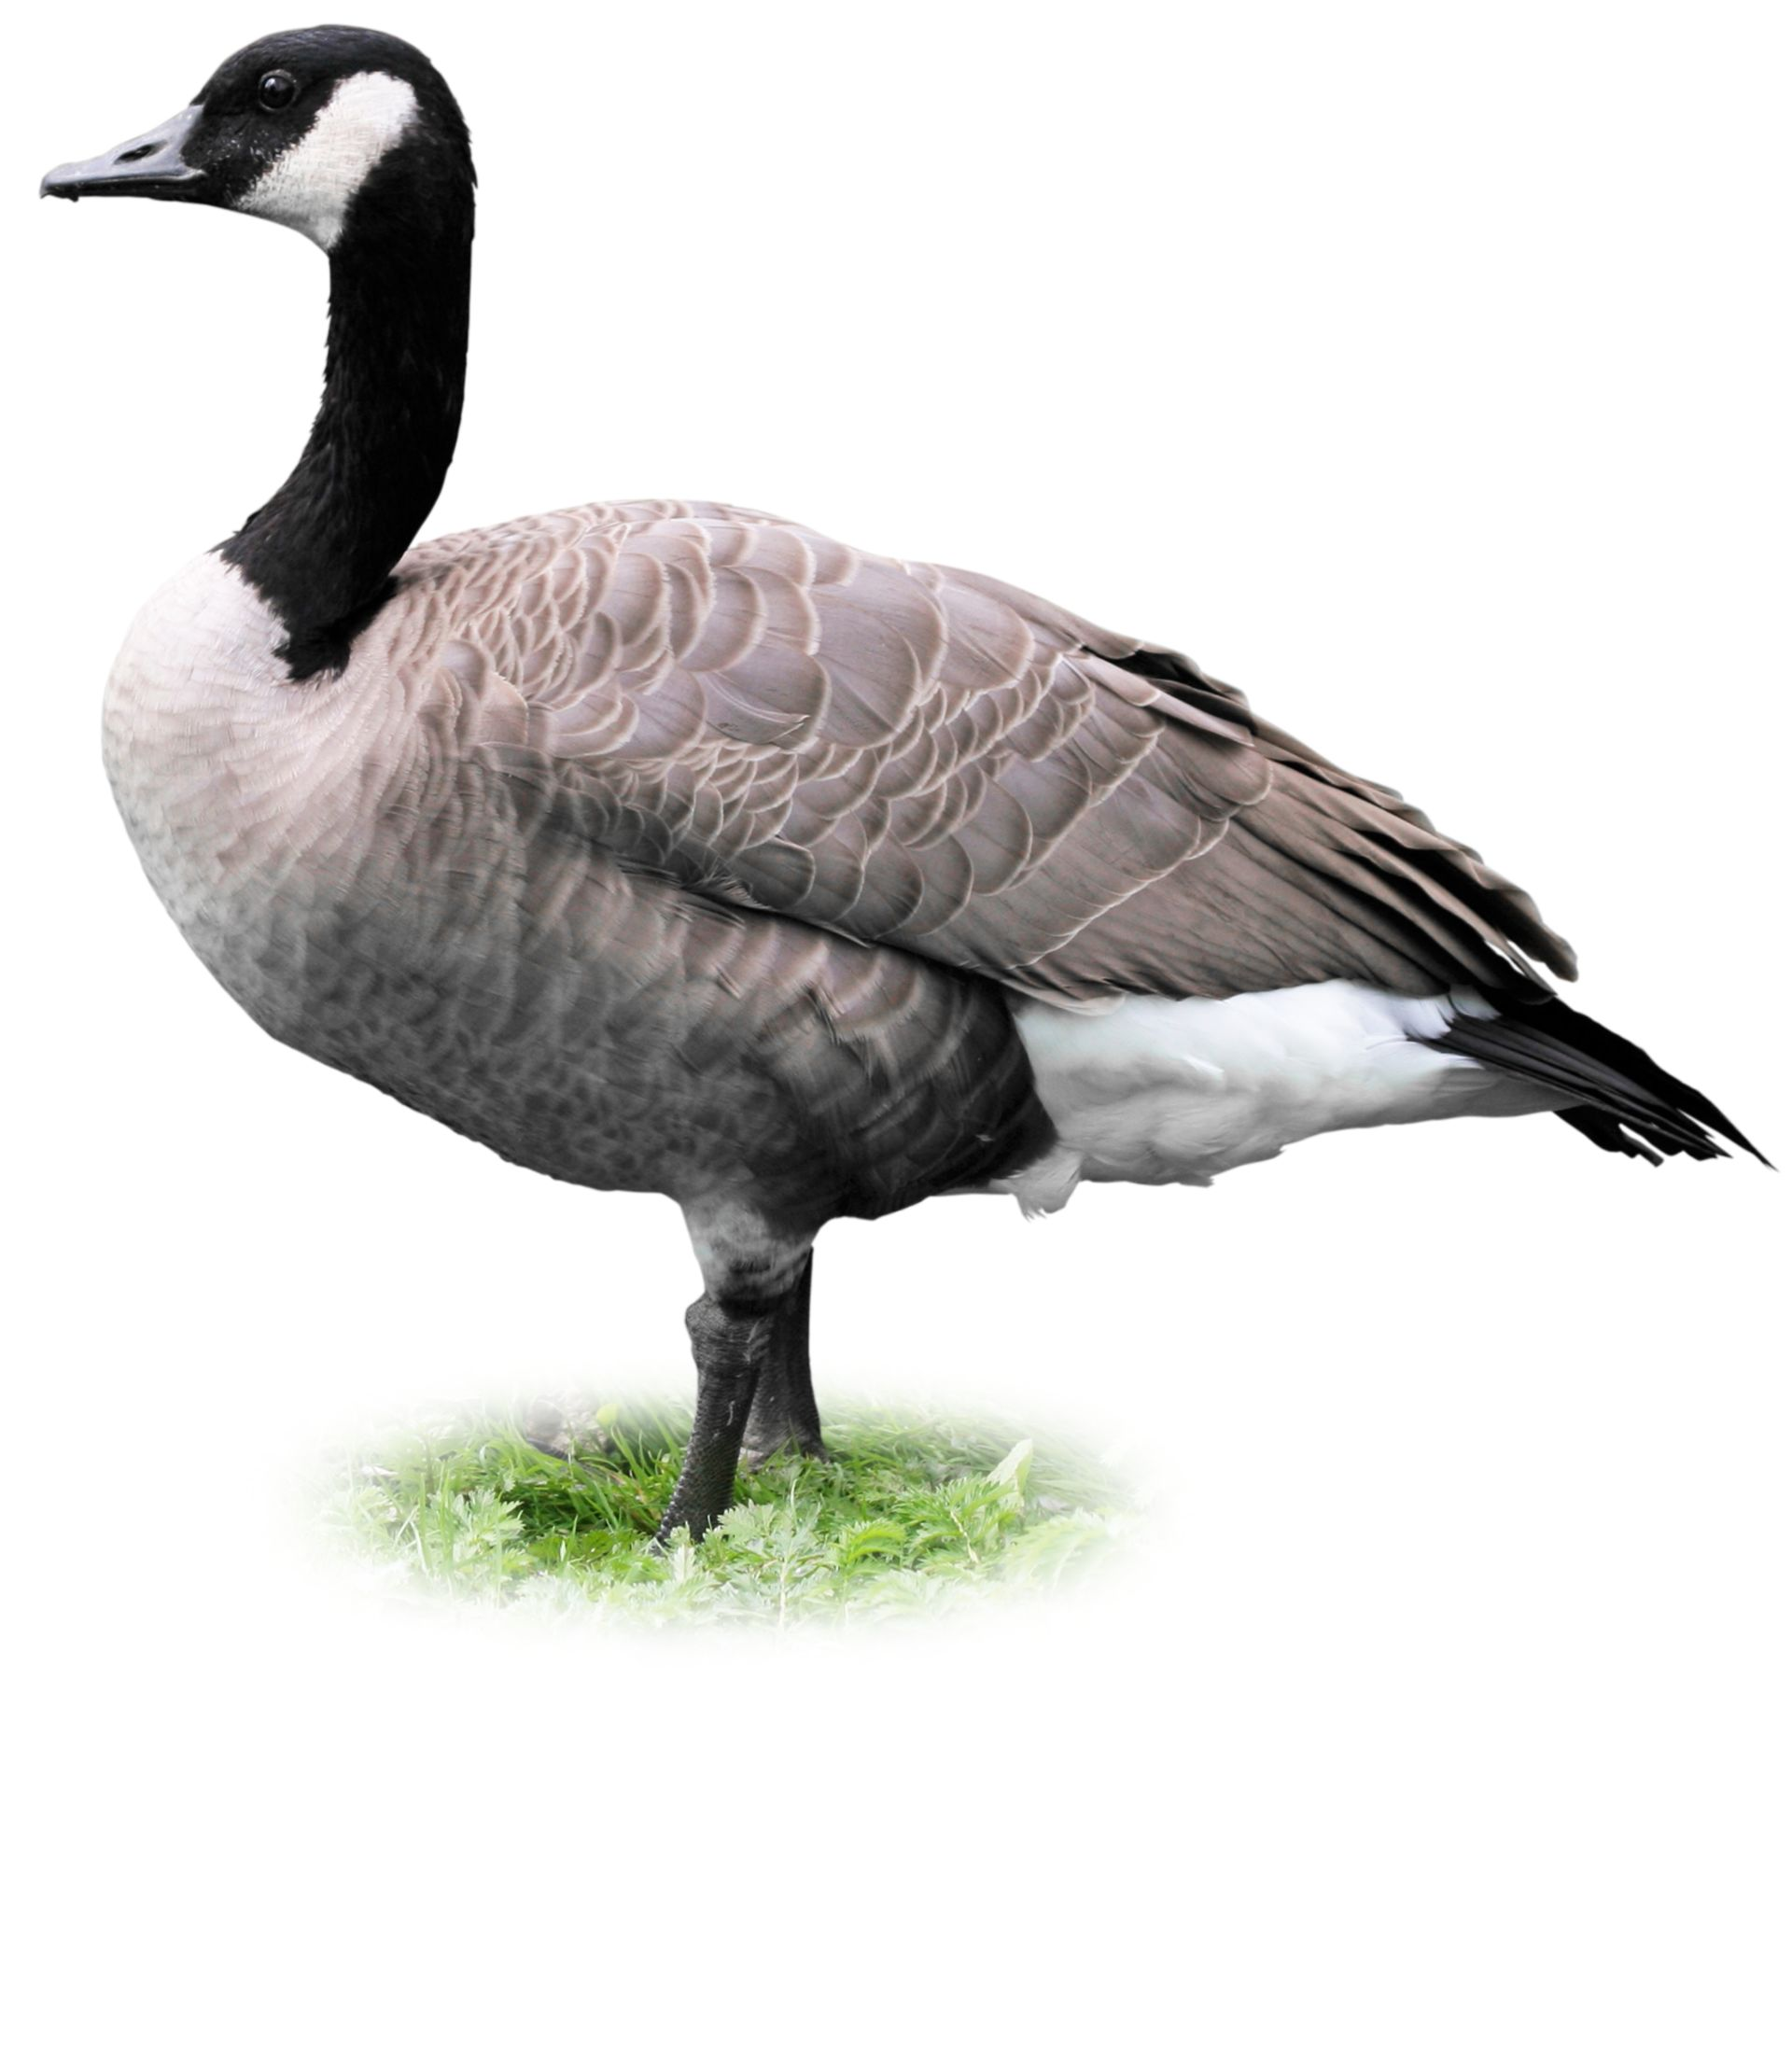 Geese Facts | What Do Geese Eat | DK Find Out